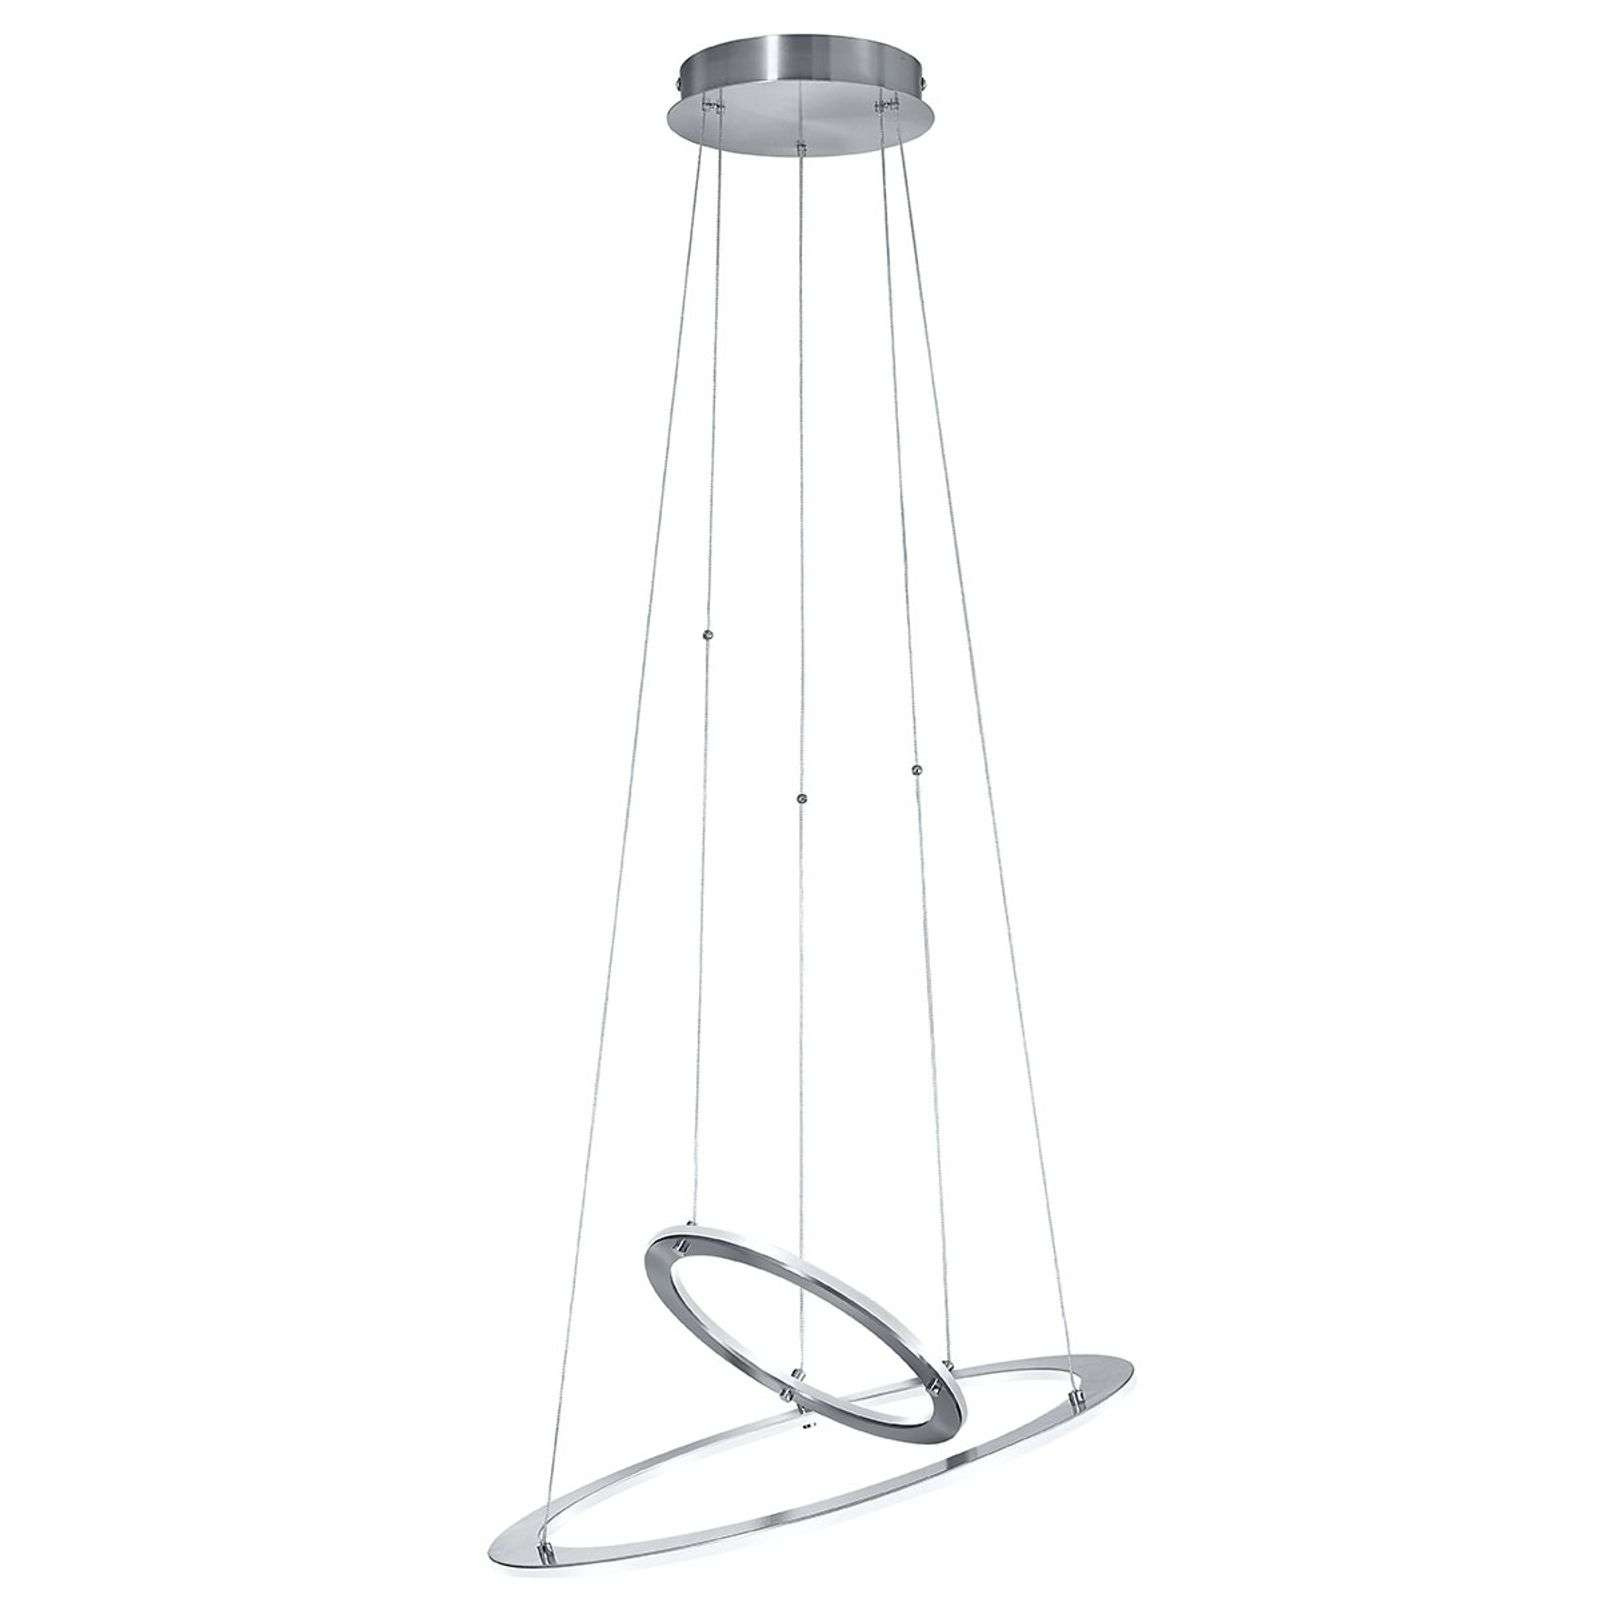 Suspension LED Mica I futuriste